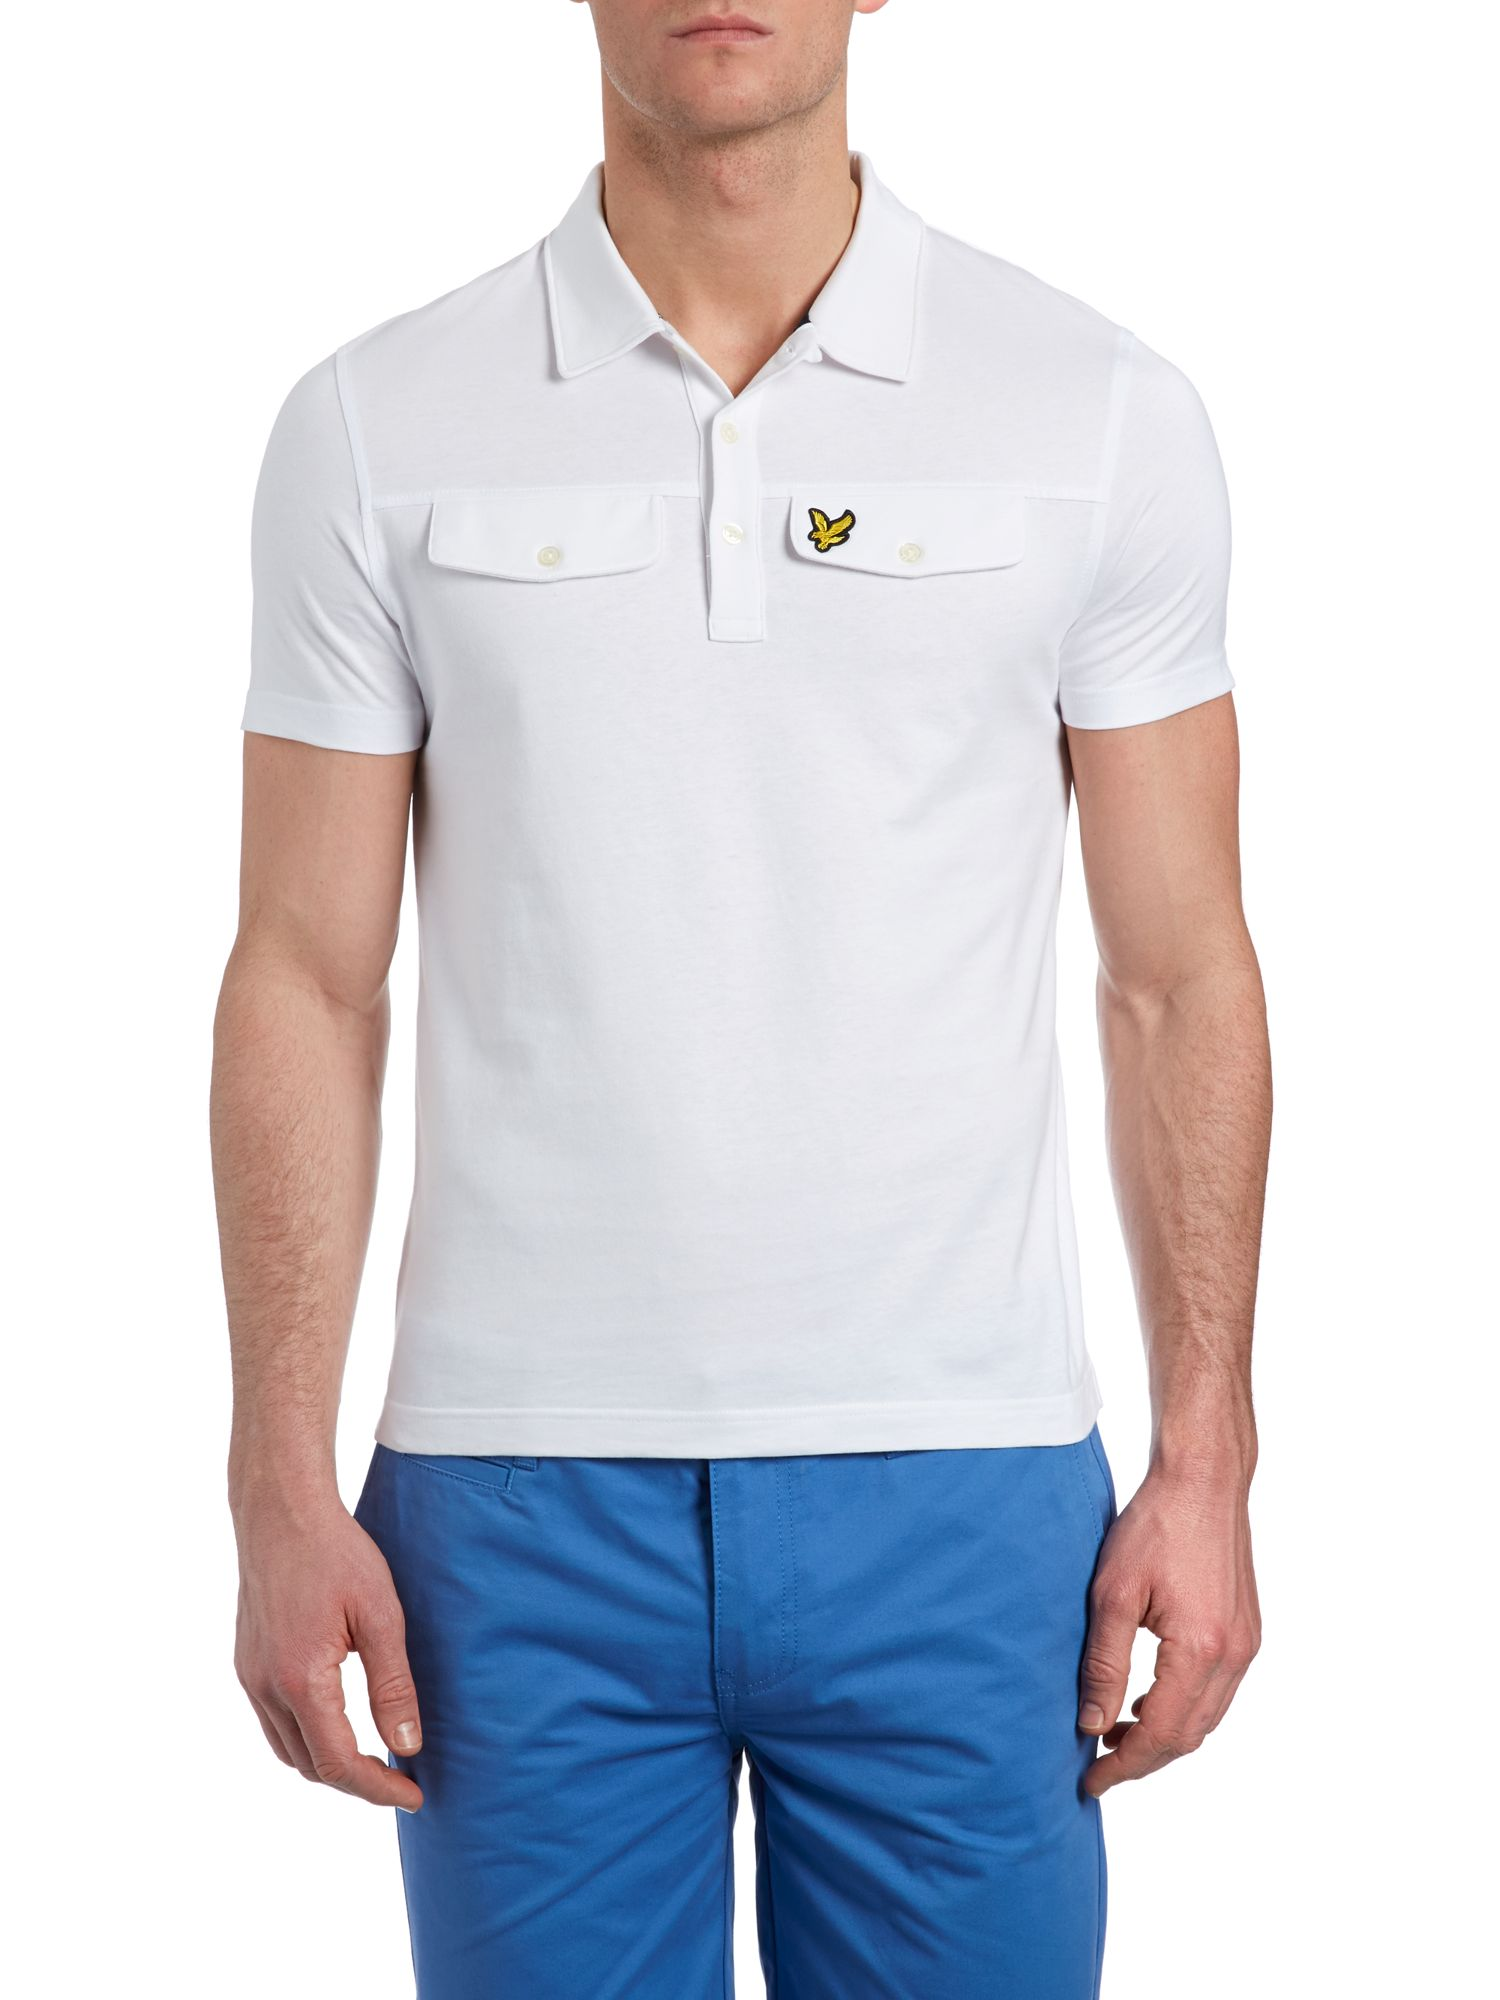 Mock pocket polo shirt